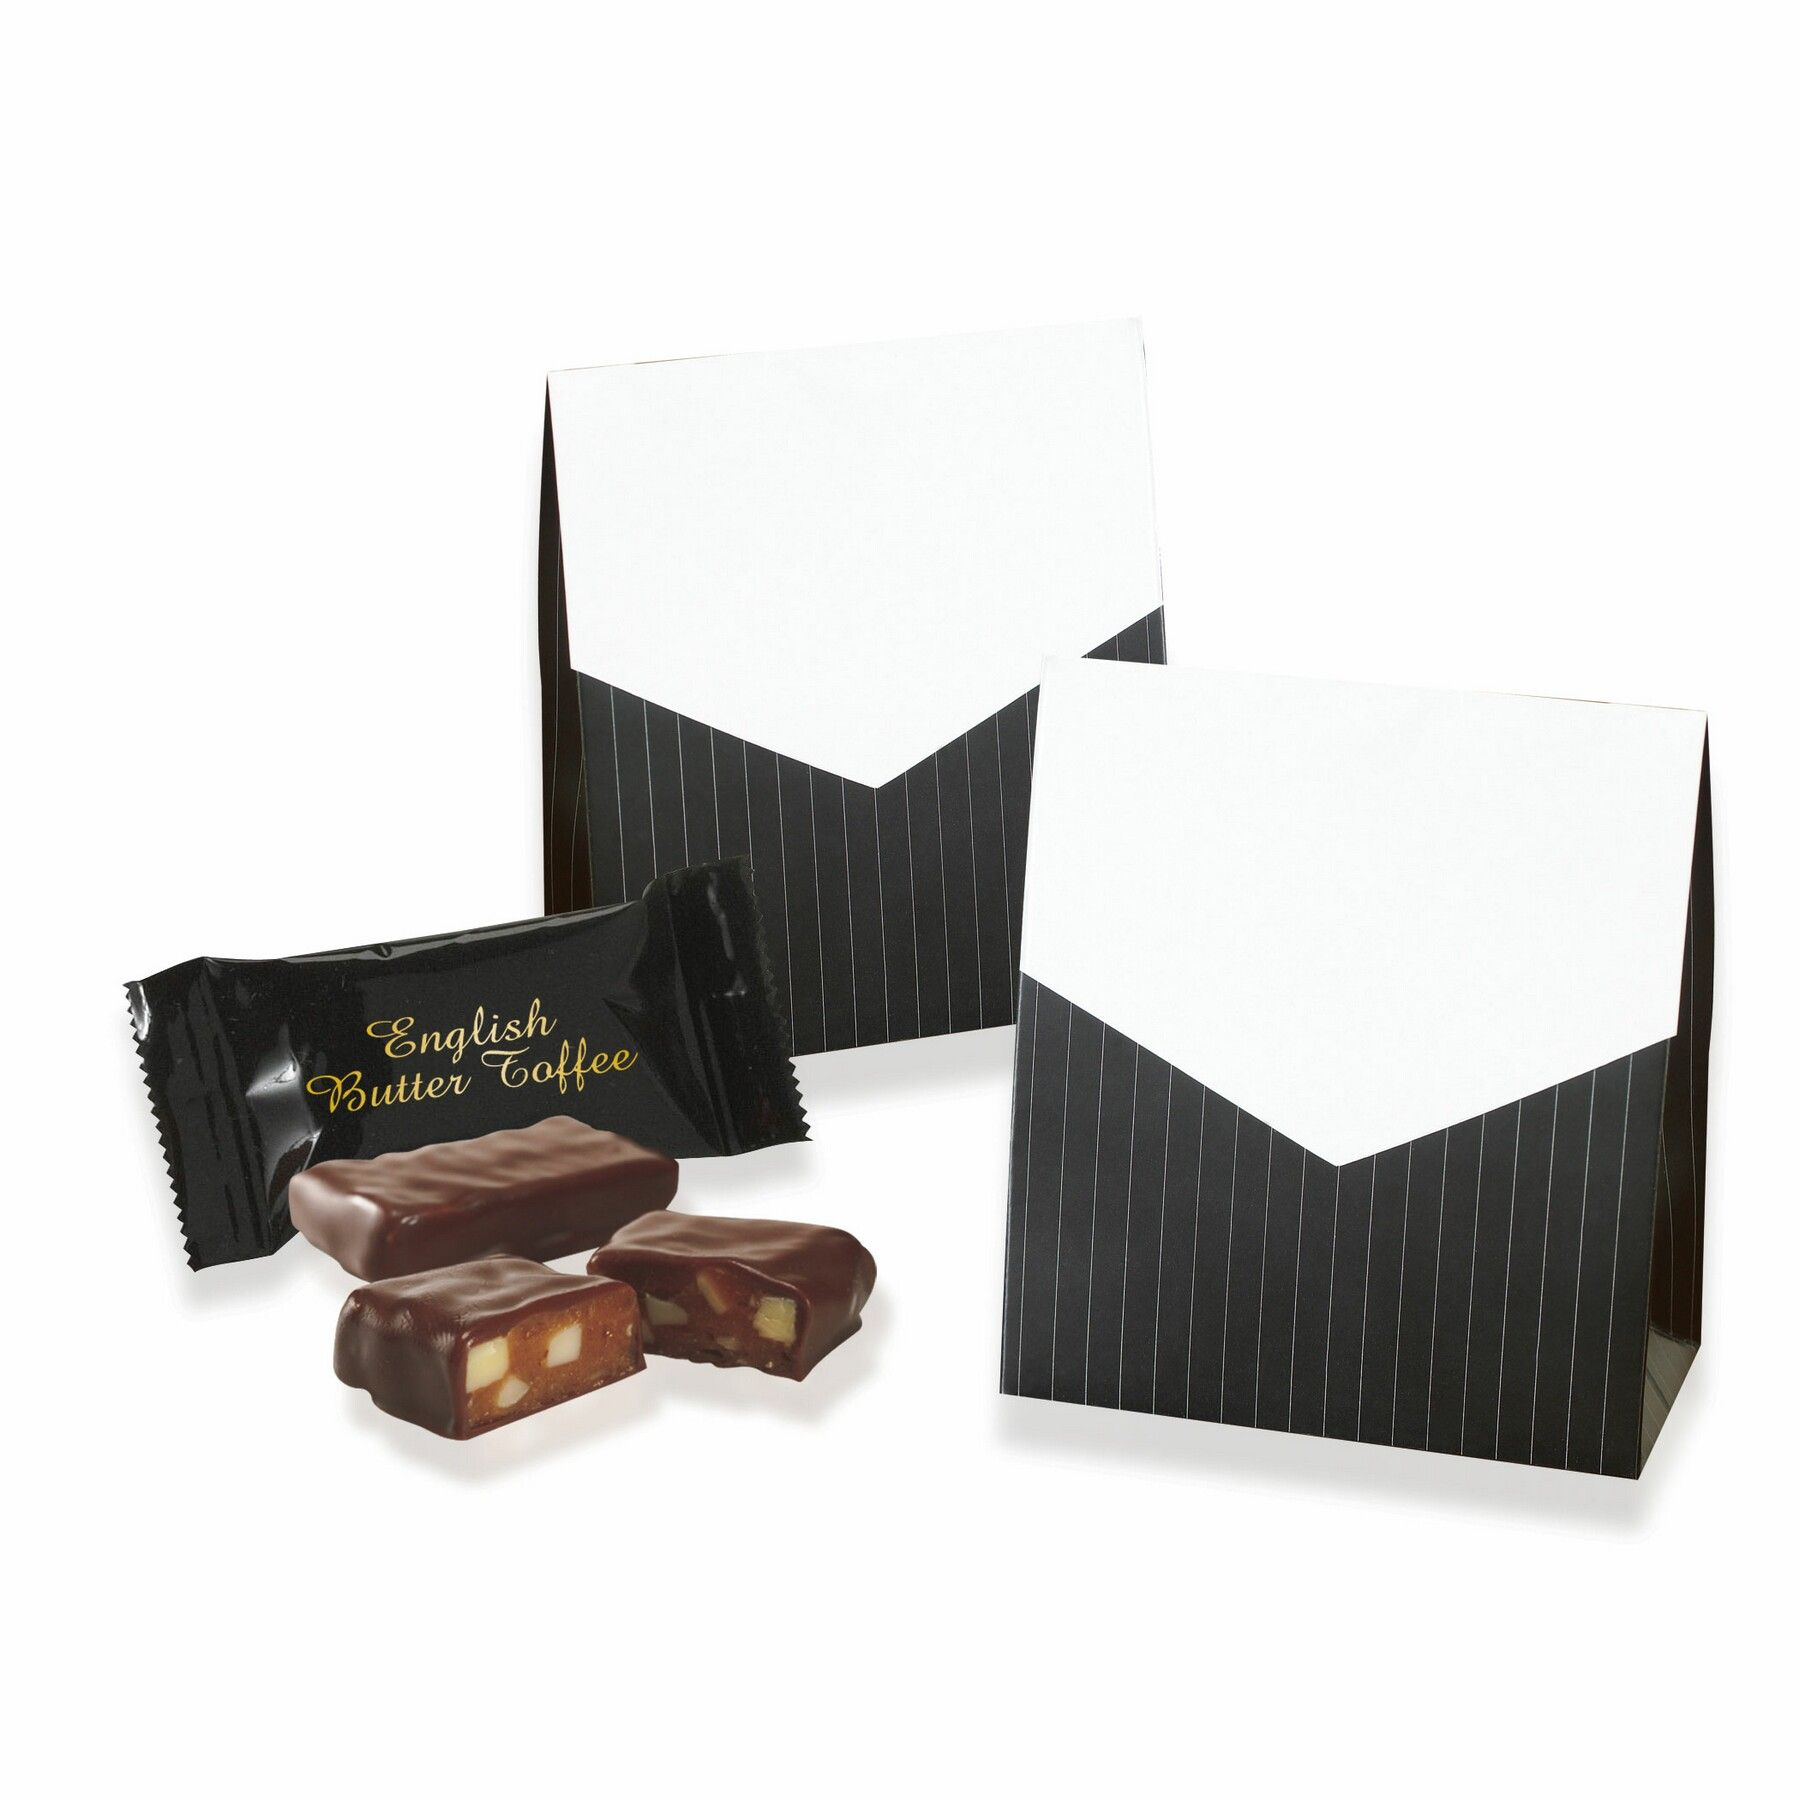 Mini Treat Pouch w/ English Butter Toffee, 242-EBT, One Colour Imprint